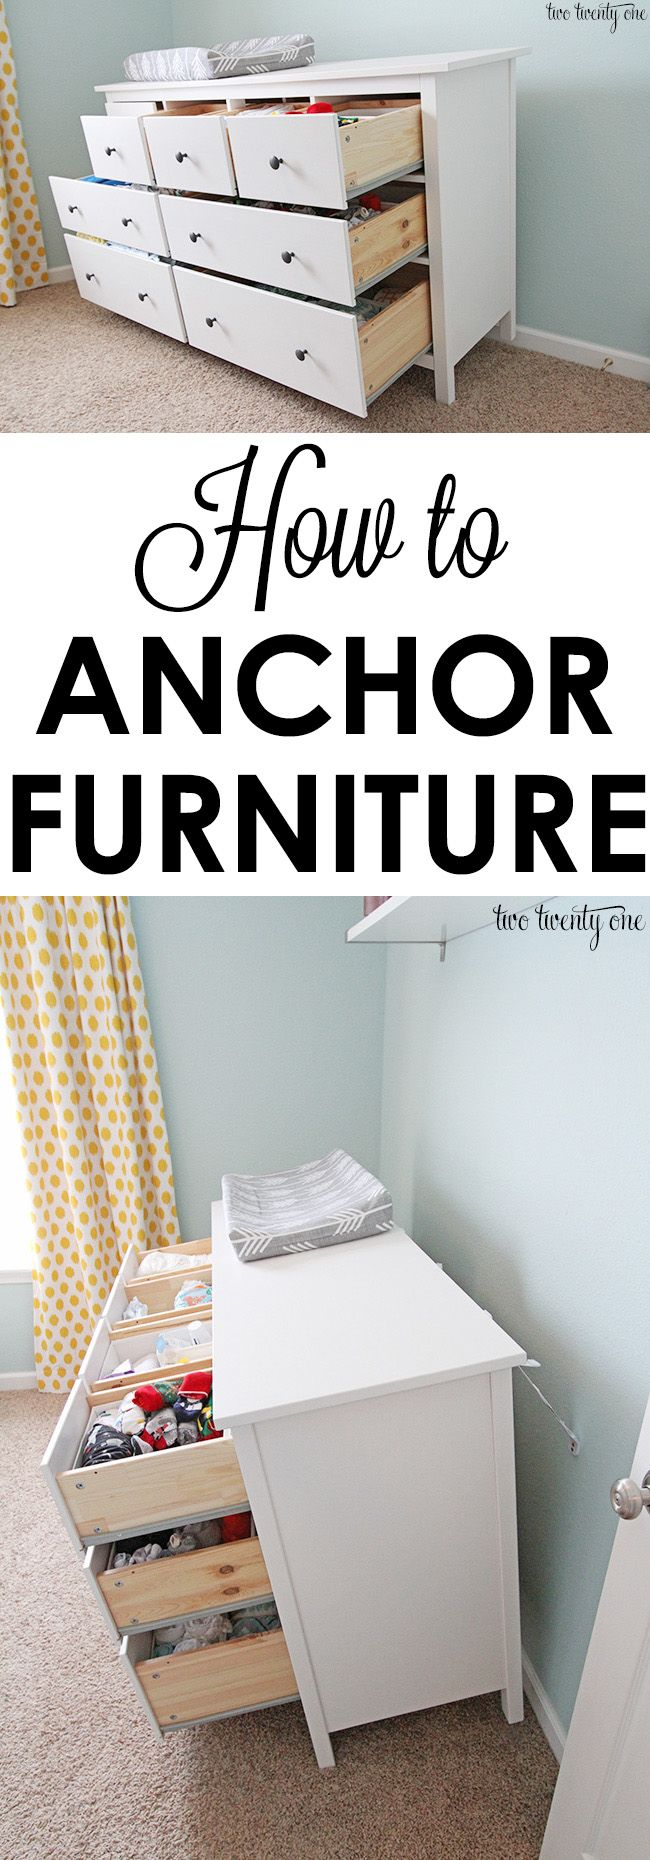 How to Anchor Furniture | Child, TVs and Learning